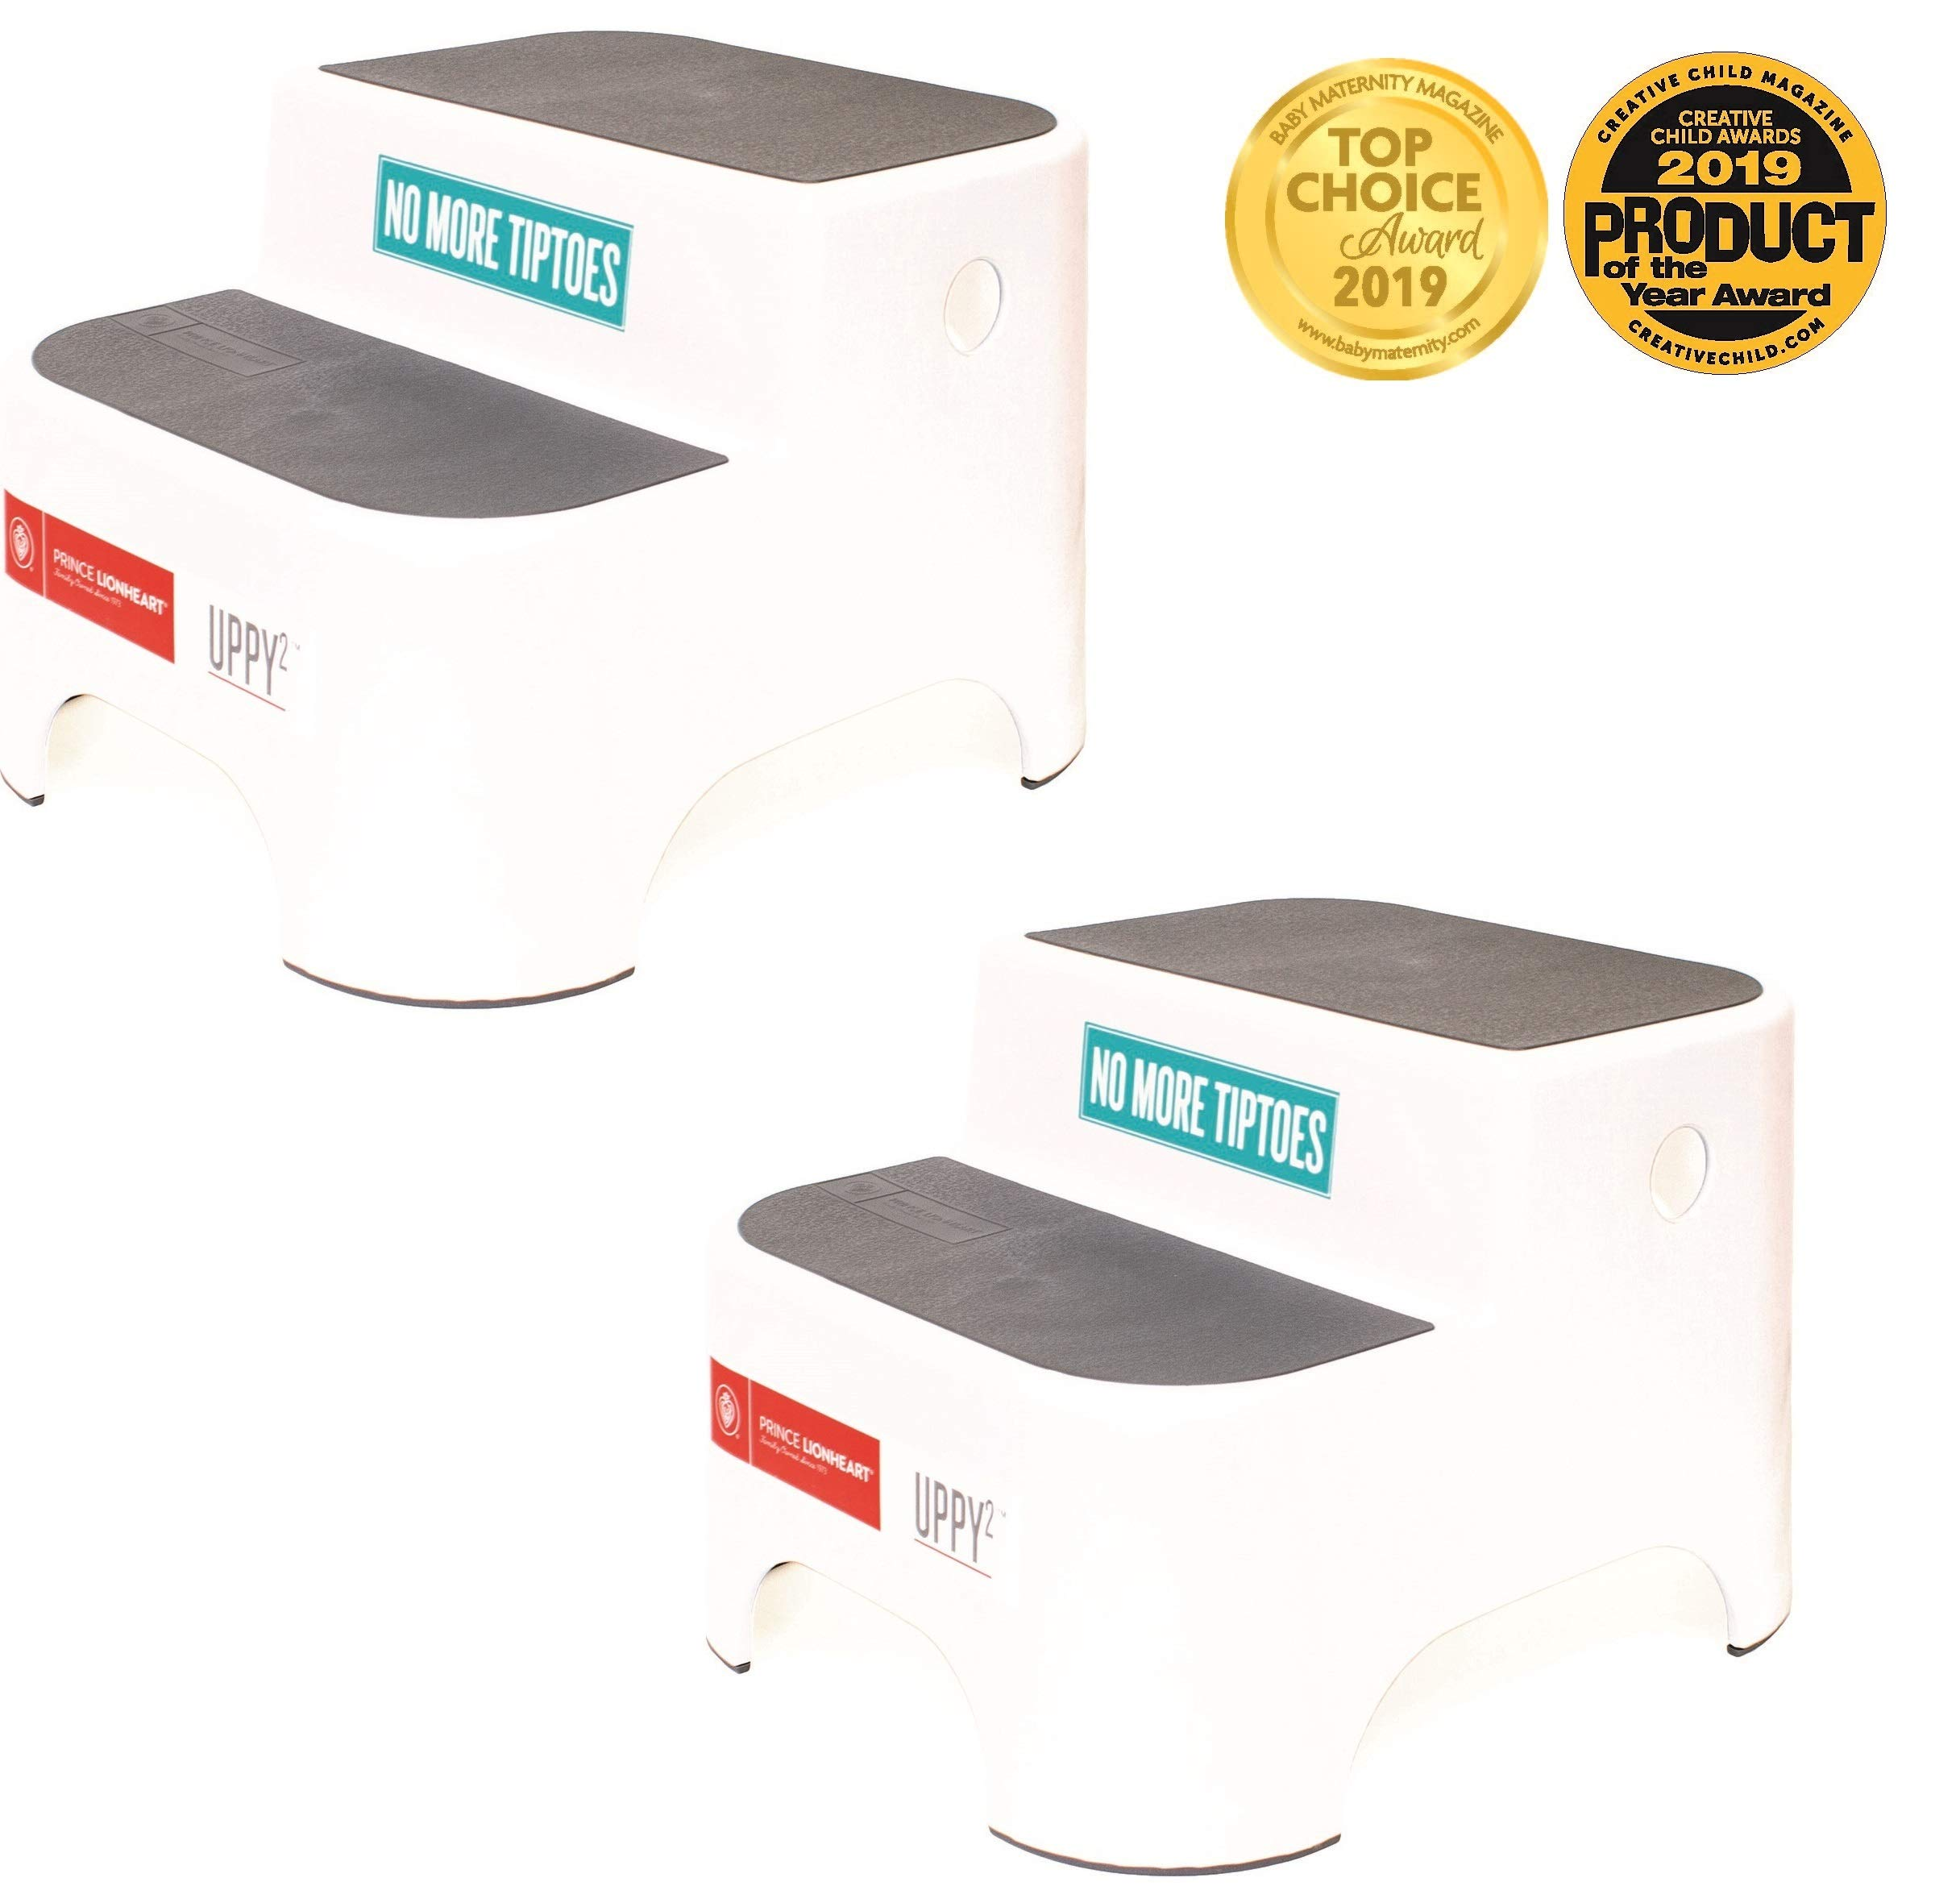 Prince Lionheart UPPY2 (2 Pack) Step Stools (Galactic Grey)